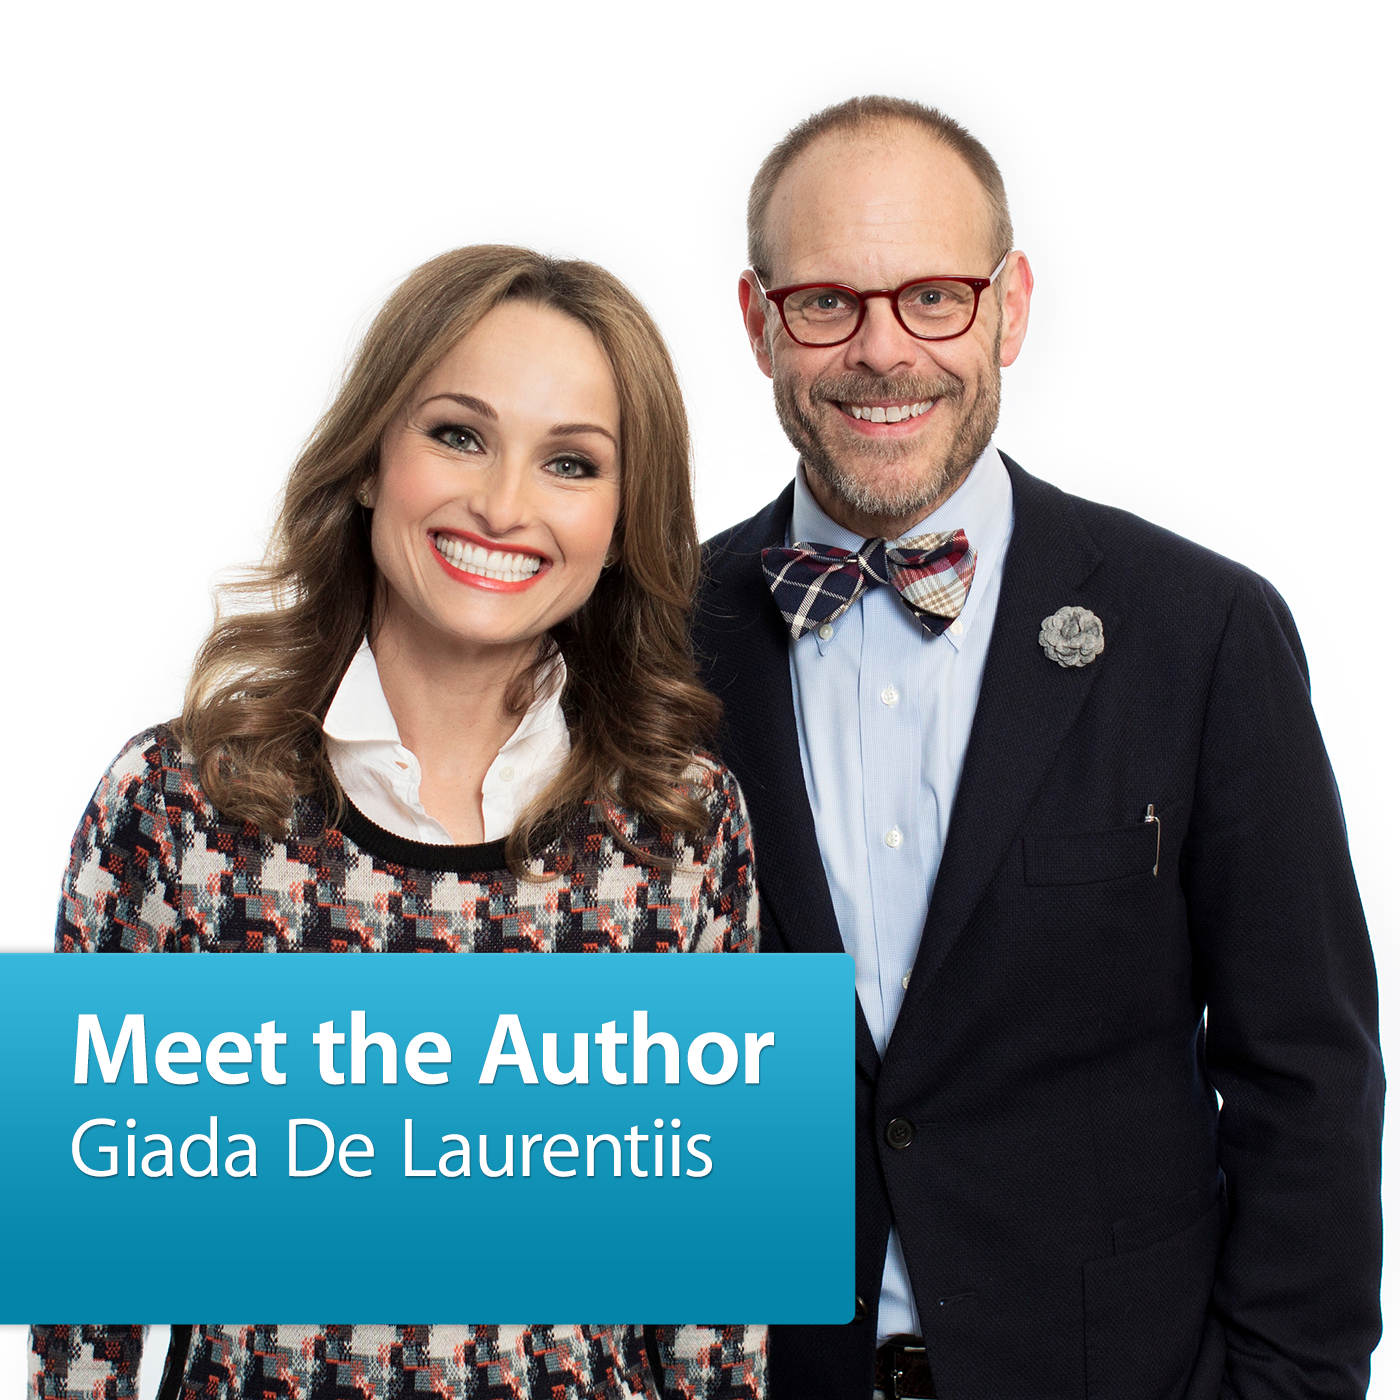 Giada De Laurentiis: Meet the Author